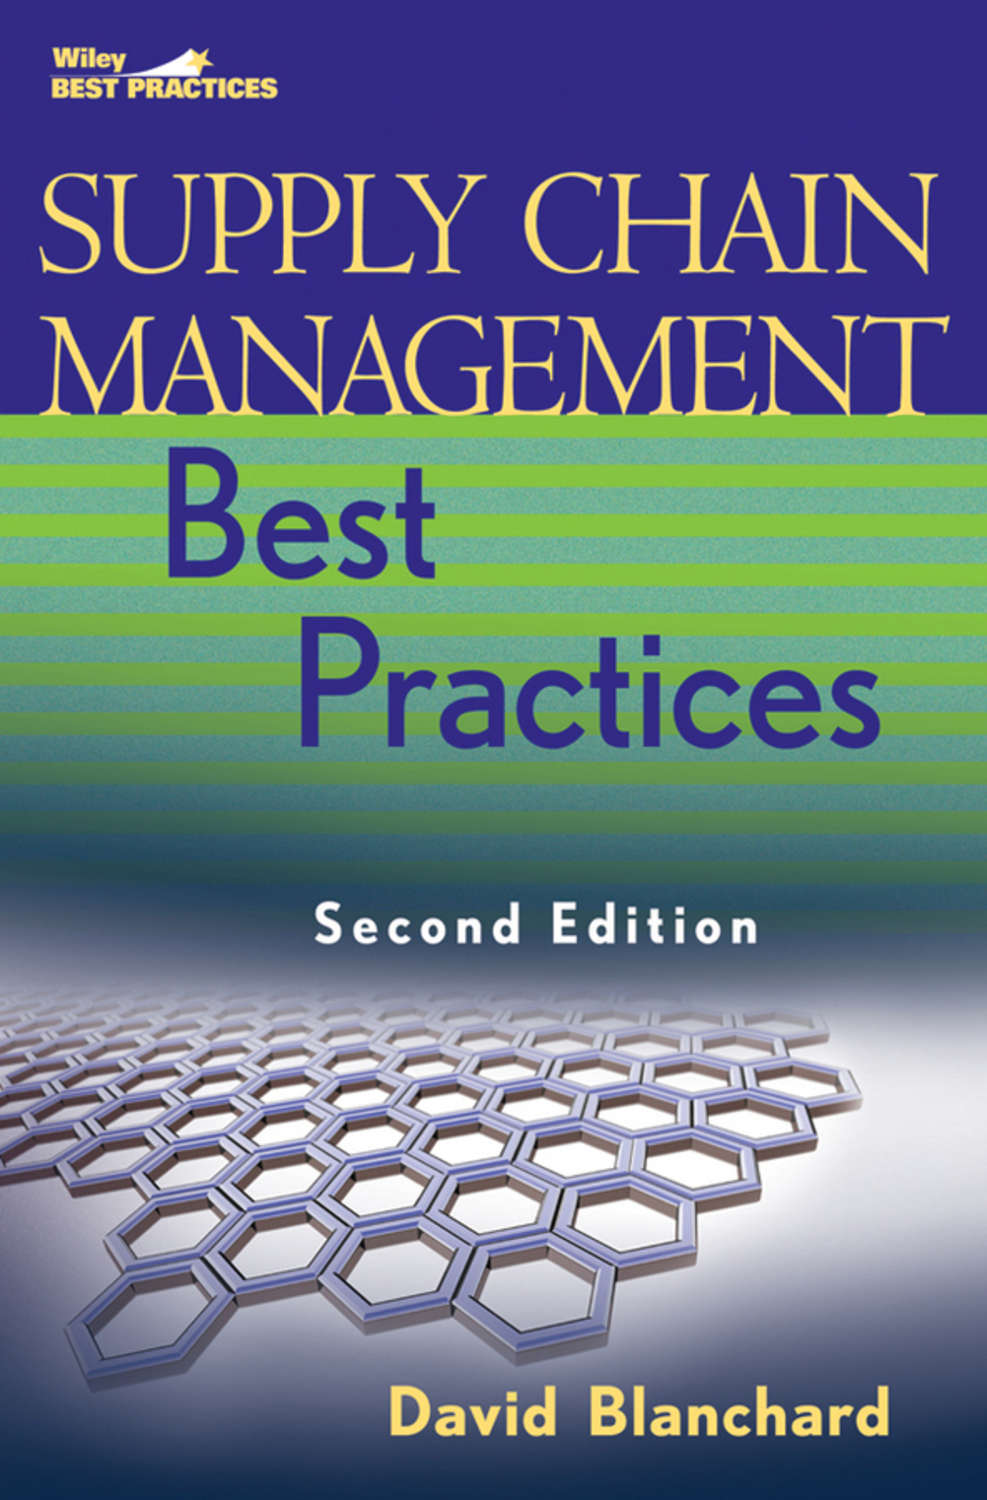 best practices of supply chain management In recent years, i've seen many healthcare delivery systems discover that supply chain and materials management practices from manufacturing and retailing can boost the bottom line in ways that also make work more fulfilling for staff and help support better outcomes for patients.